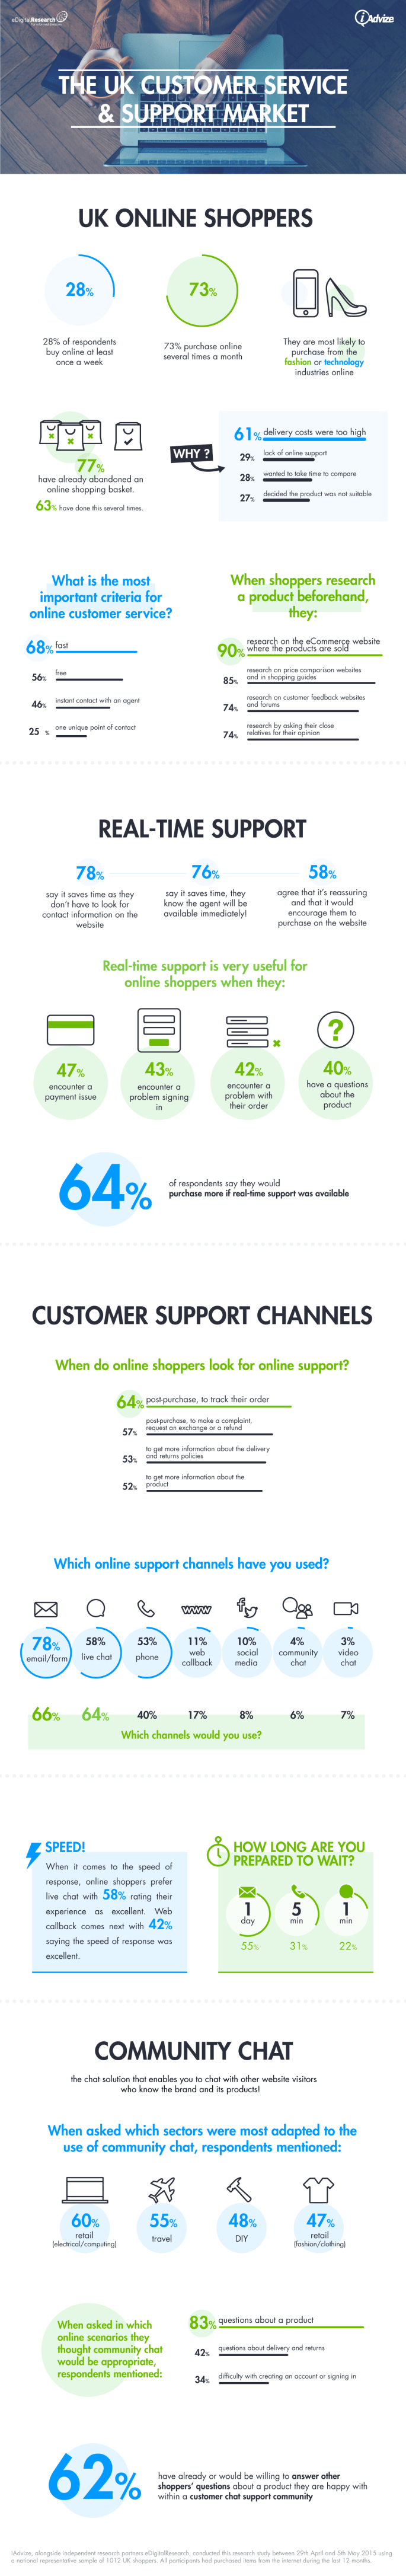 UK customer service and support market: Infographic